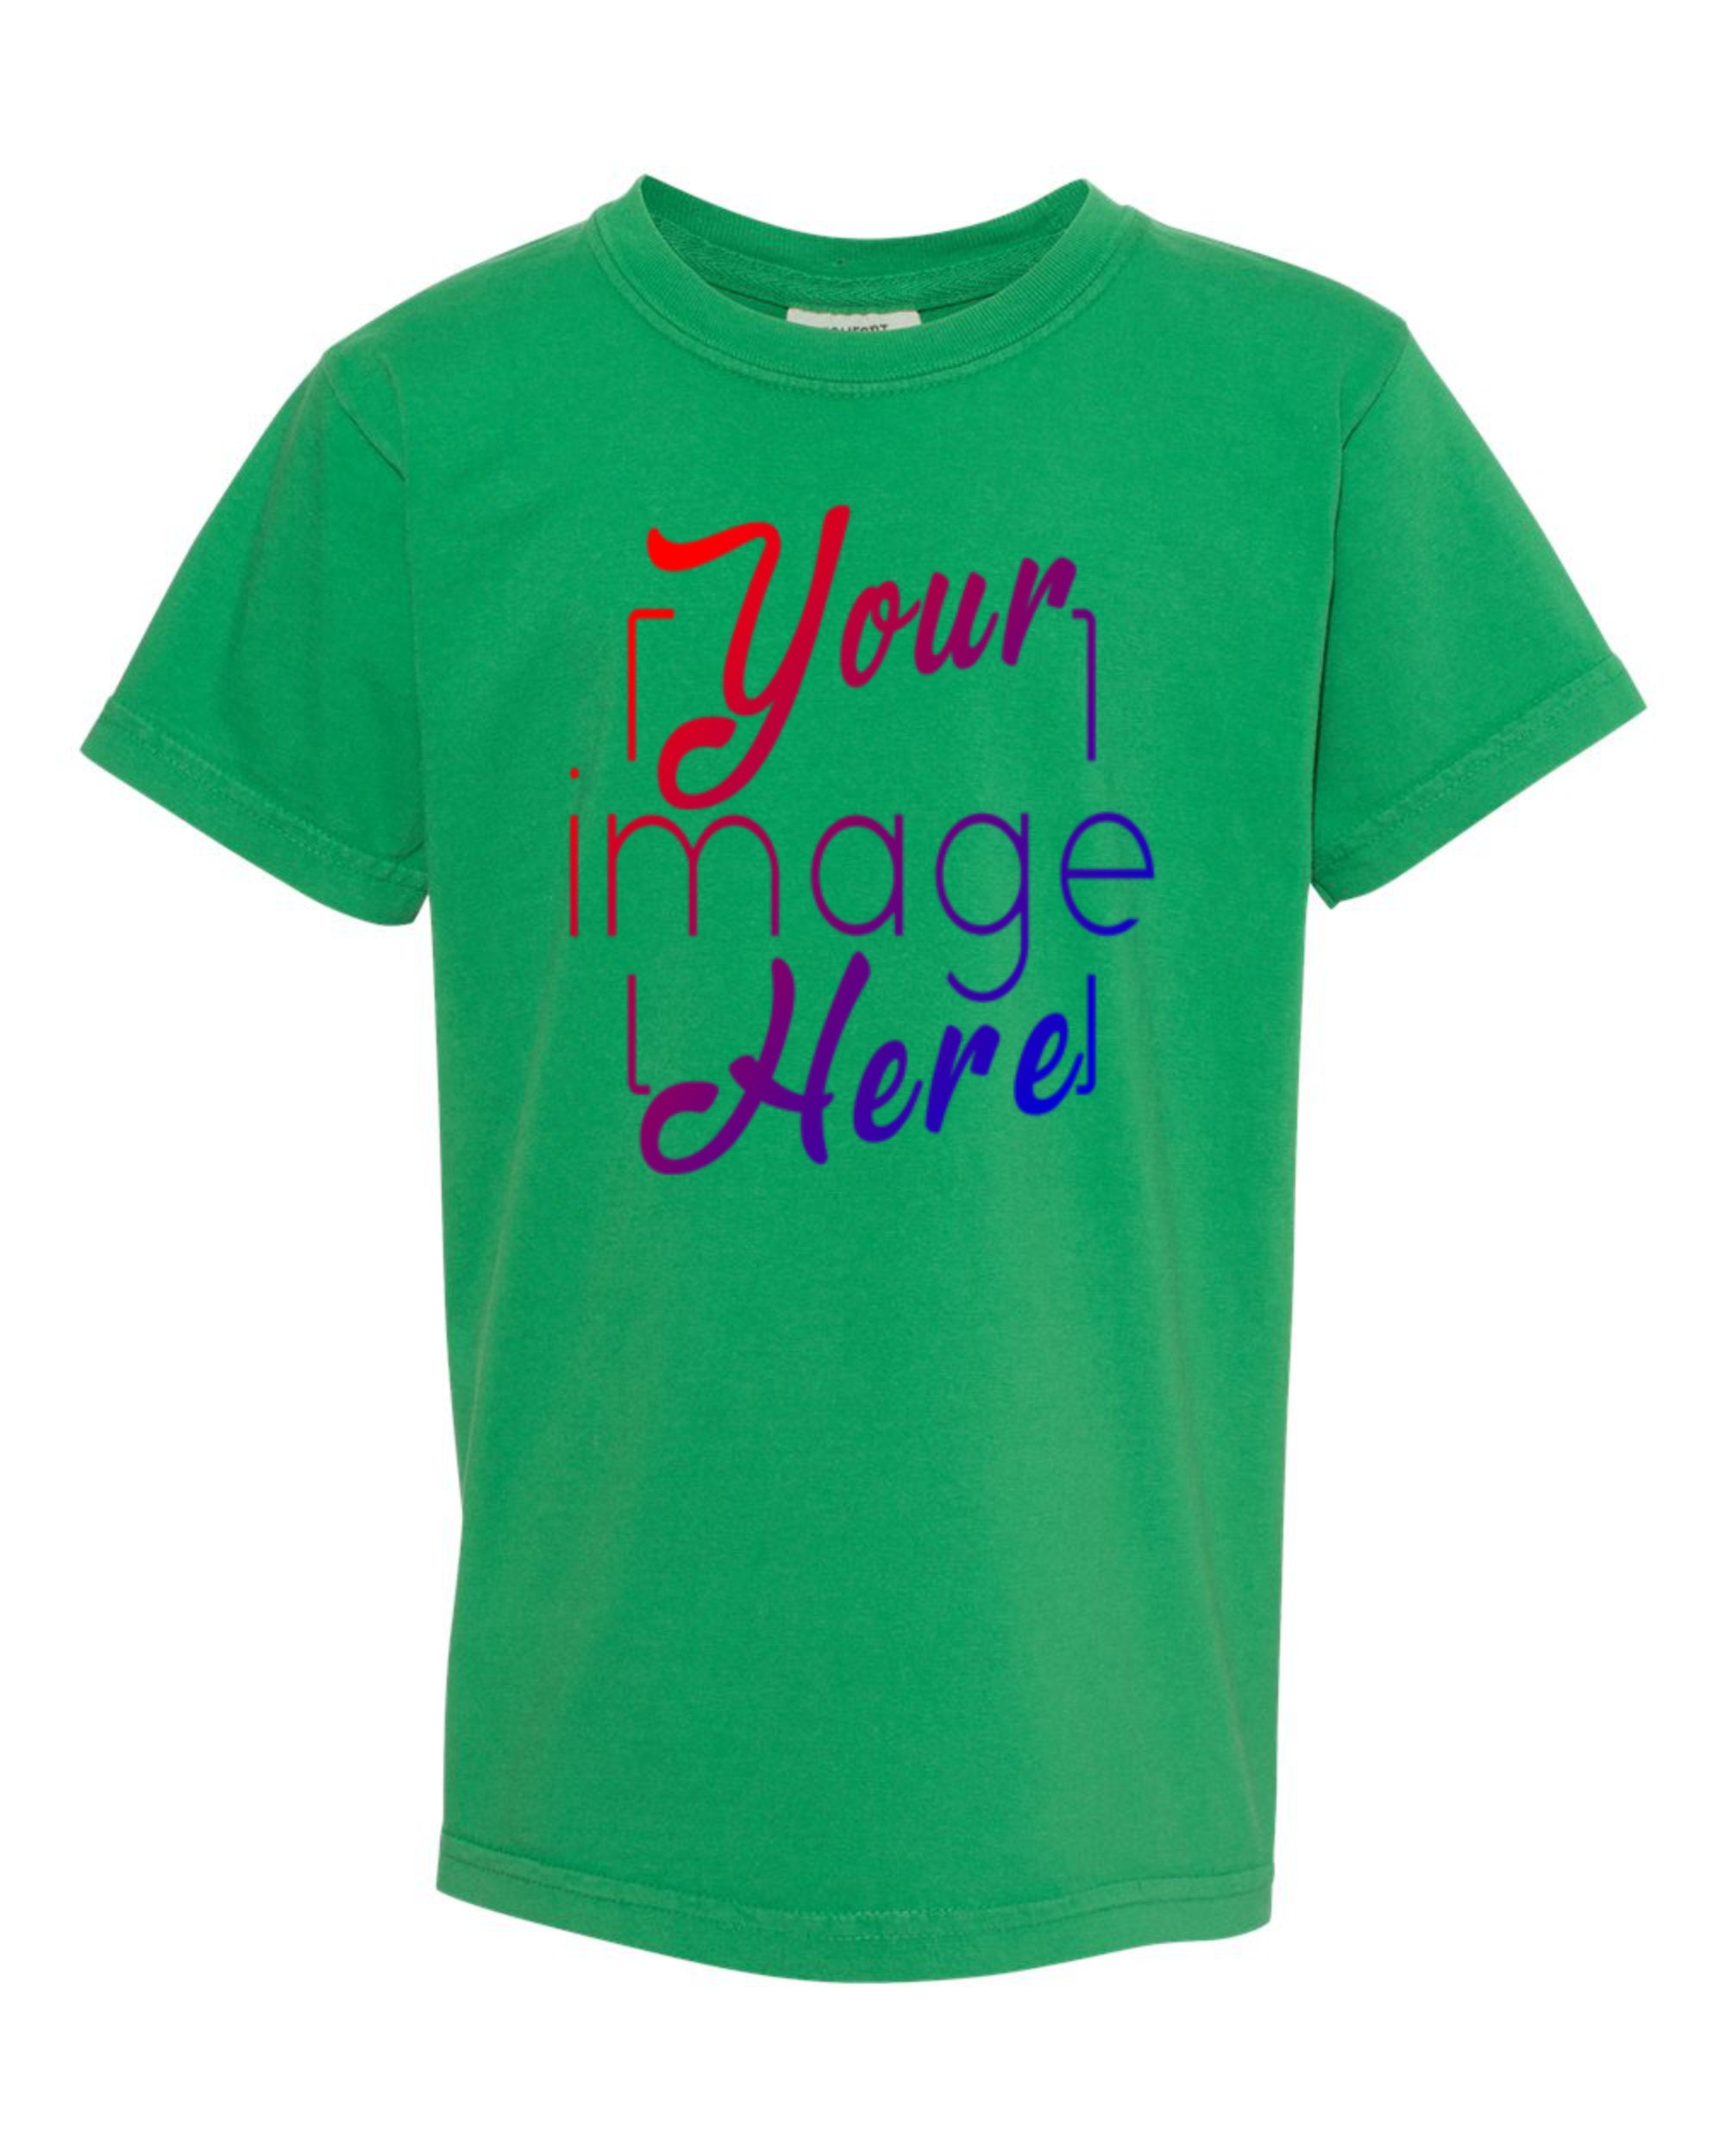 Flat Front Image of a Youth T-shirt Showing Custom Print Area